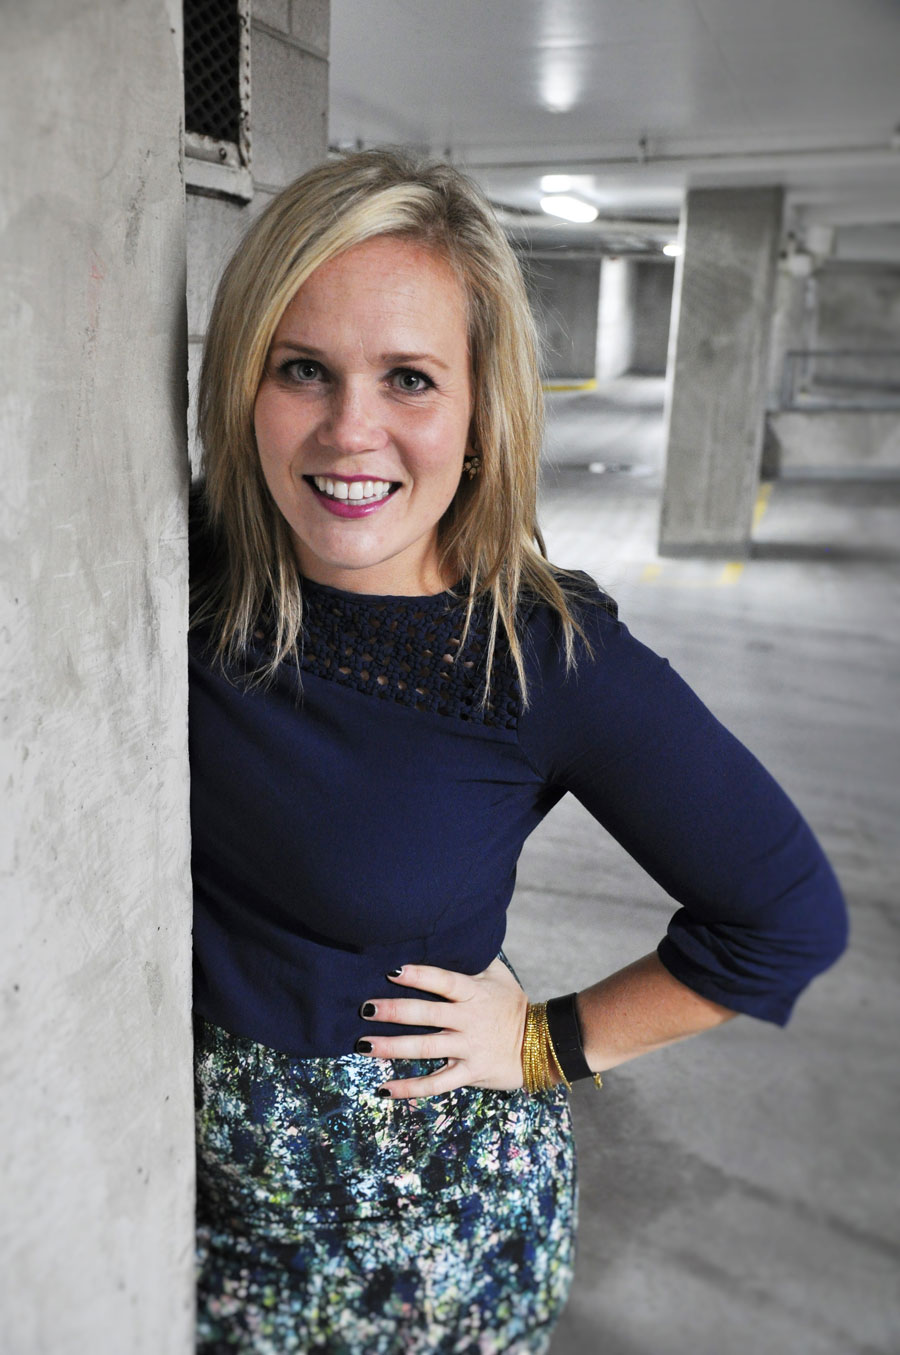 young blonde woman in parking garage, peeking around the corner, wearing a long-sleeved blue top and print skirt